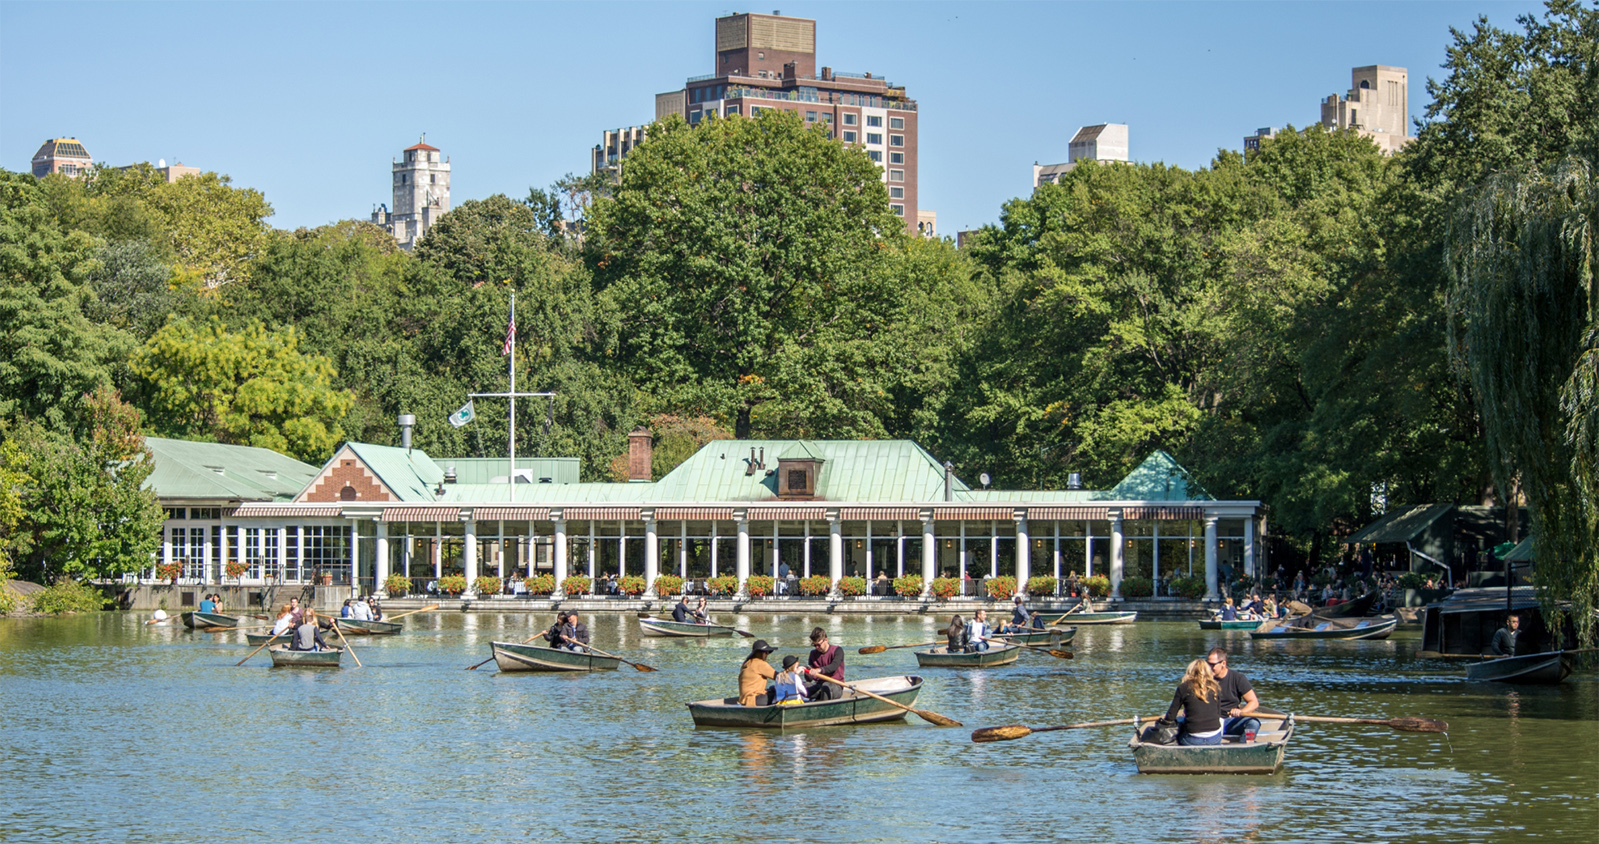 Central park attractions in central park new york for Top attractions in nyc